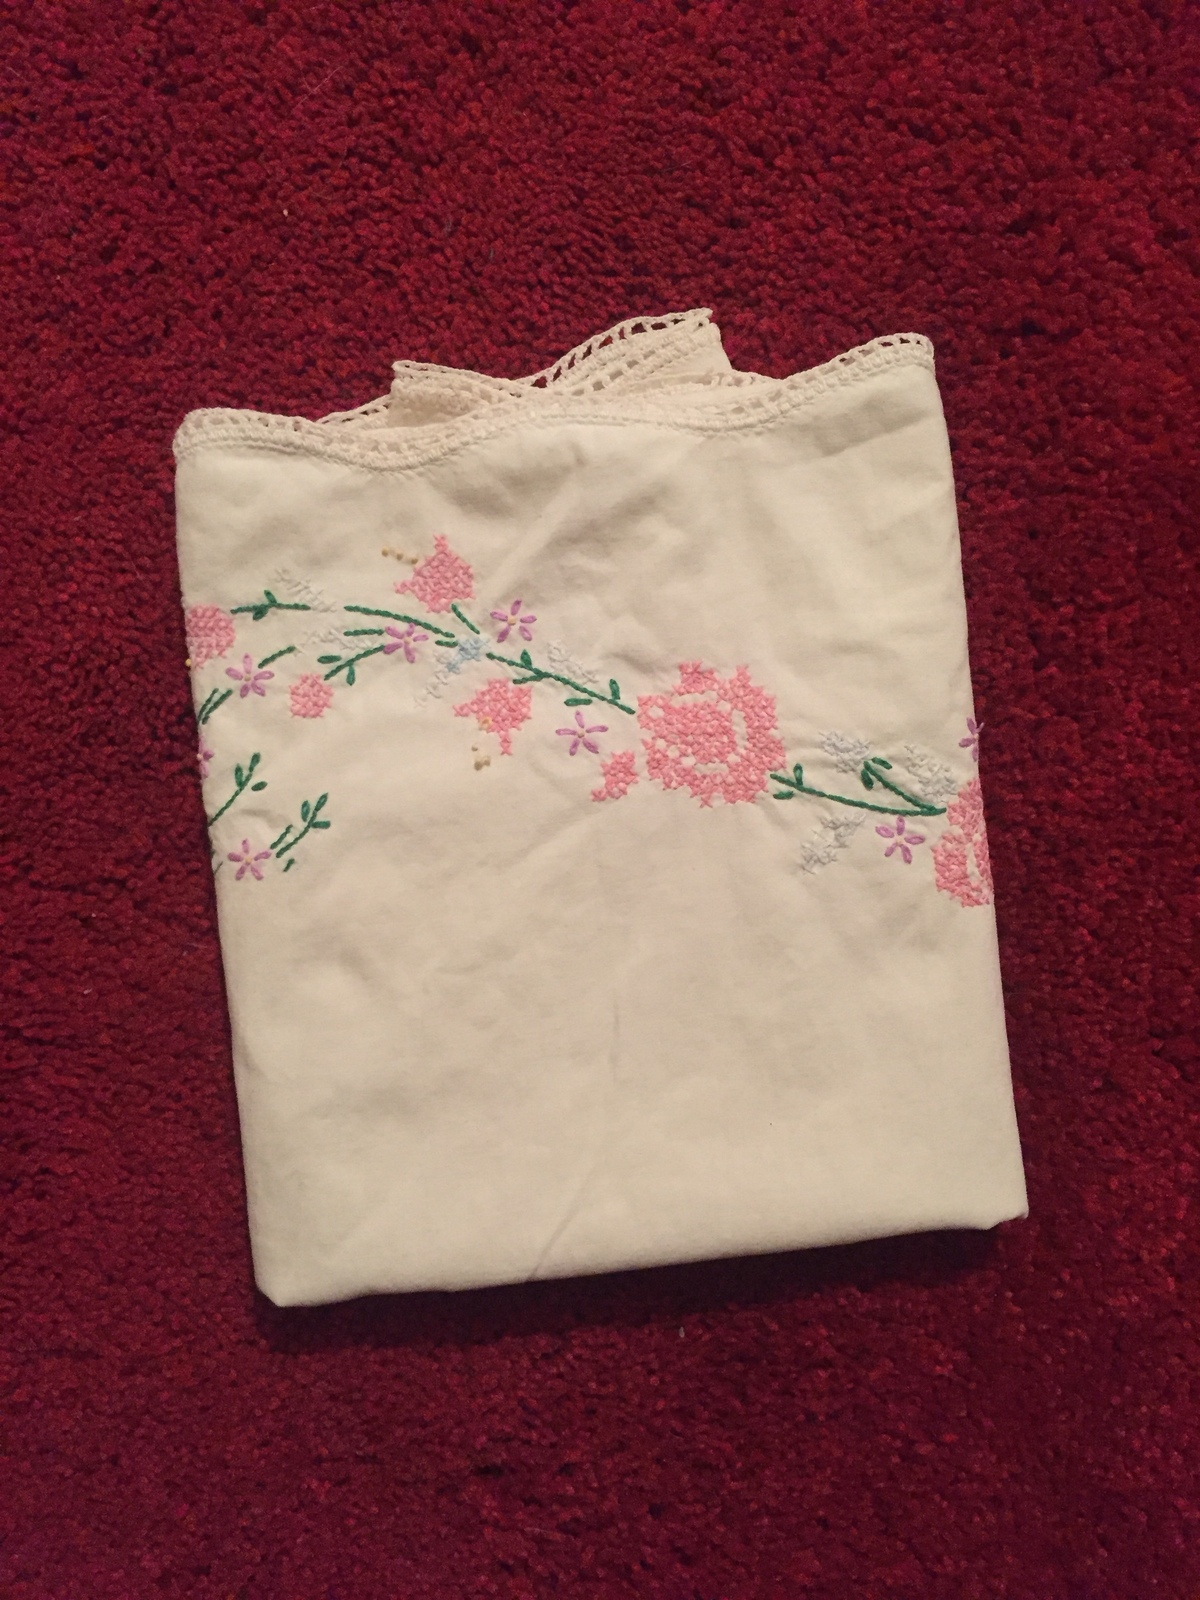 One Antique embroidered floral pillowcase with crocheted edge